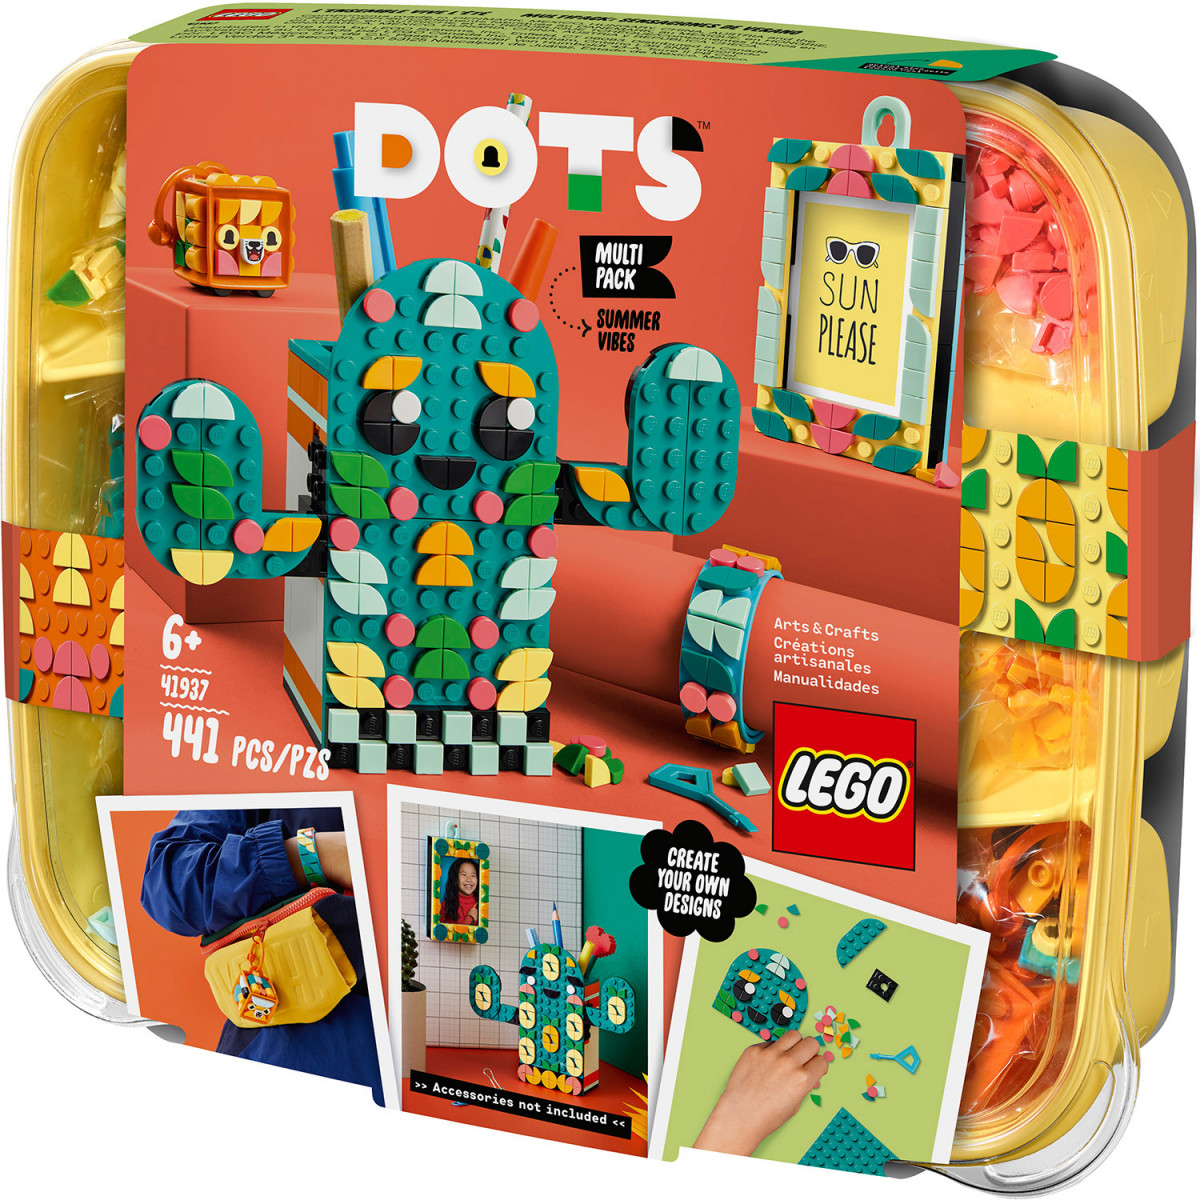 LEGO DOTS MULTI PACK - SUMMER VIBES